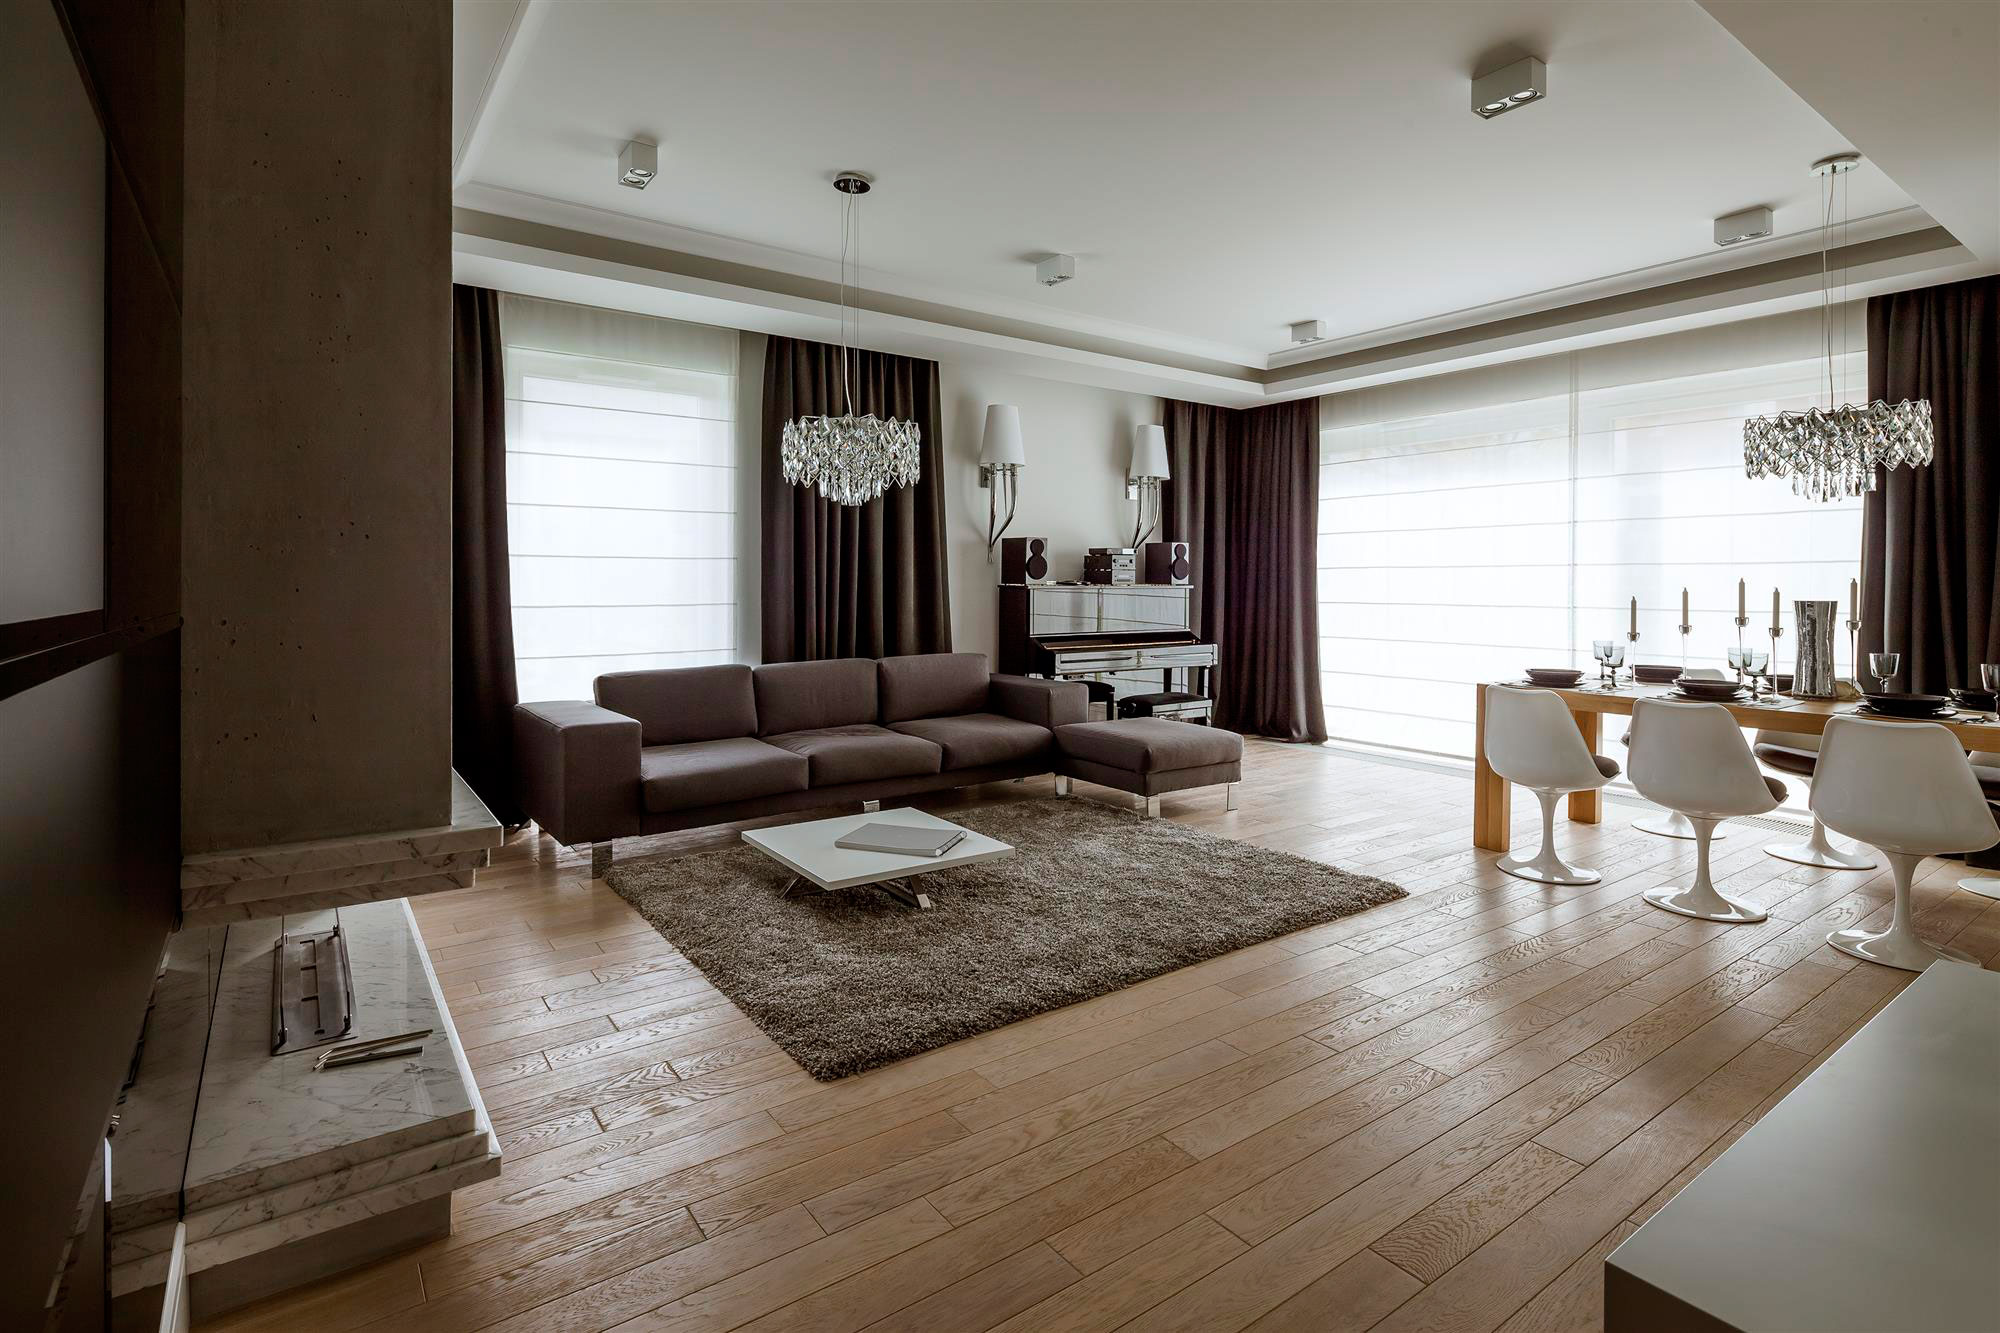 Apartment in warsaw by hola design